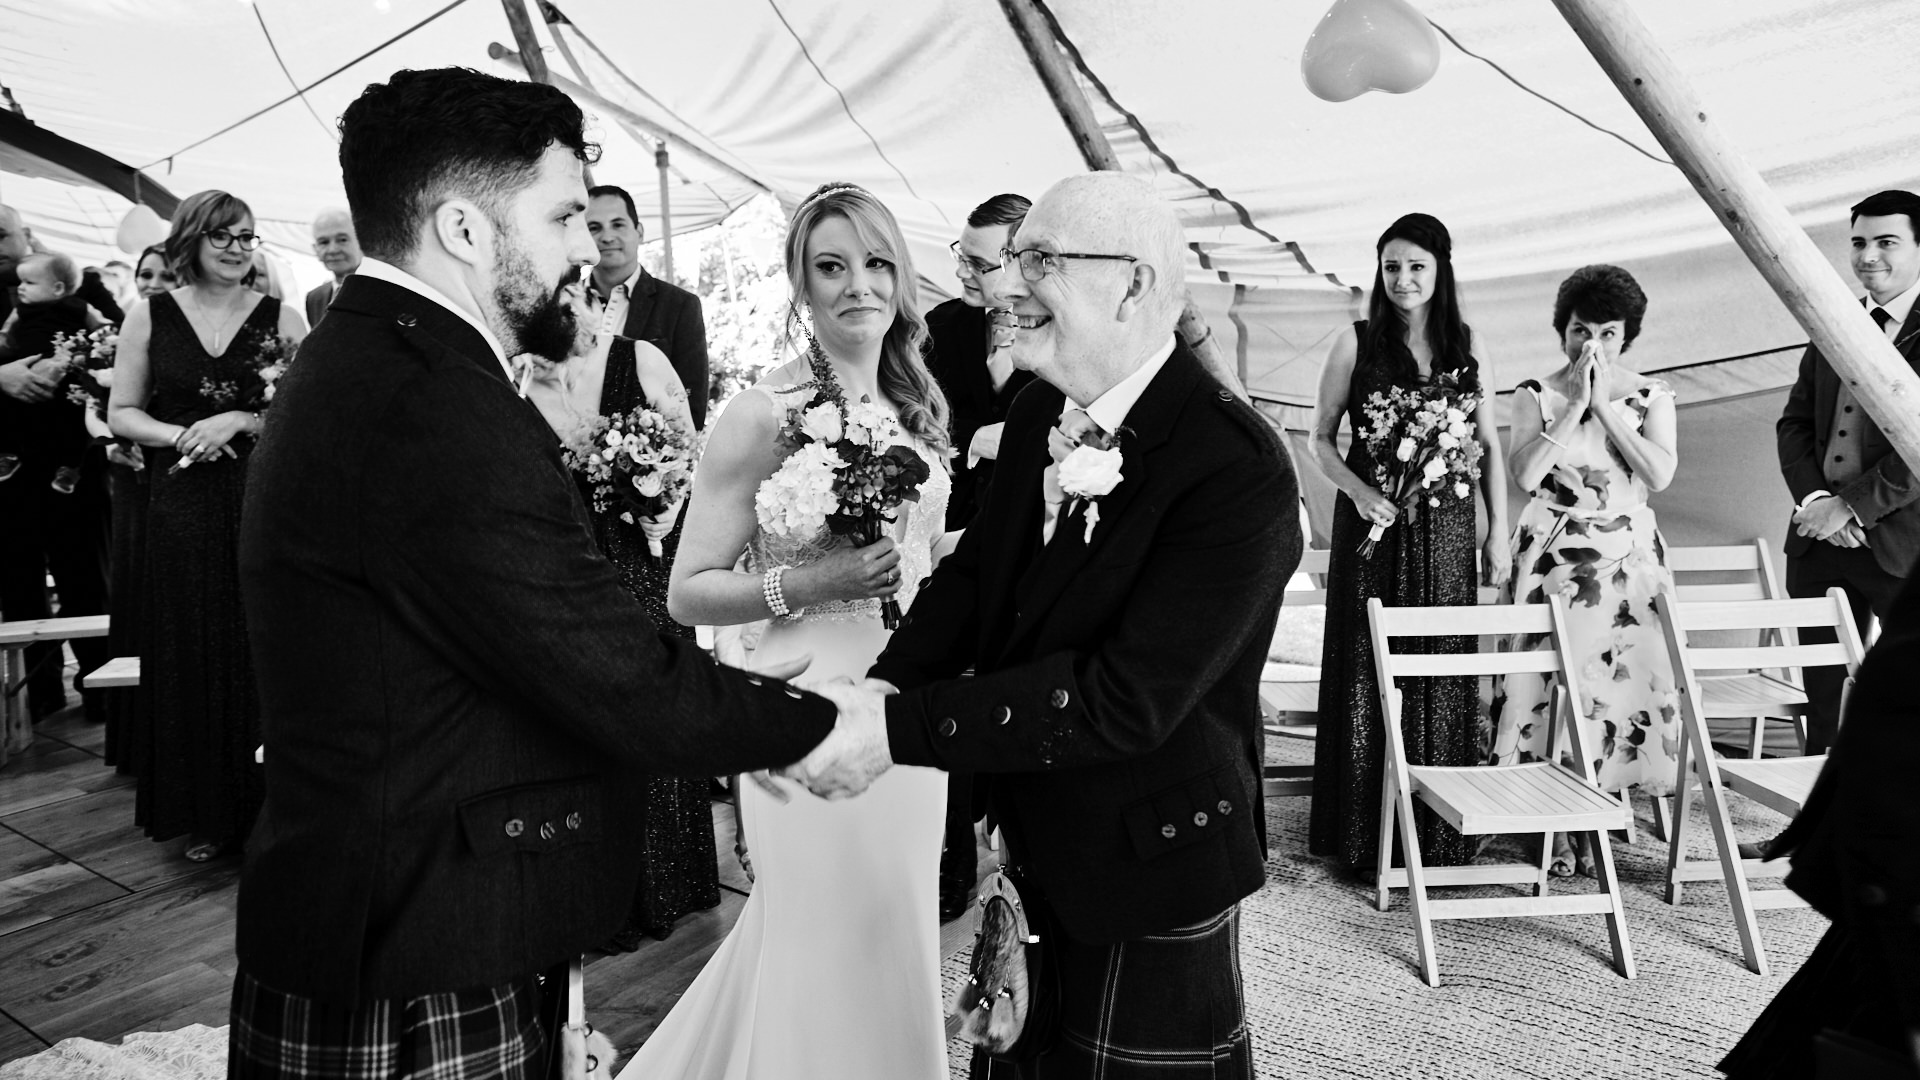 black and white photograph of the father of the bride shaking the groom's hand at the start of the wedding ceremony